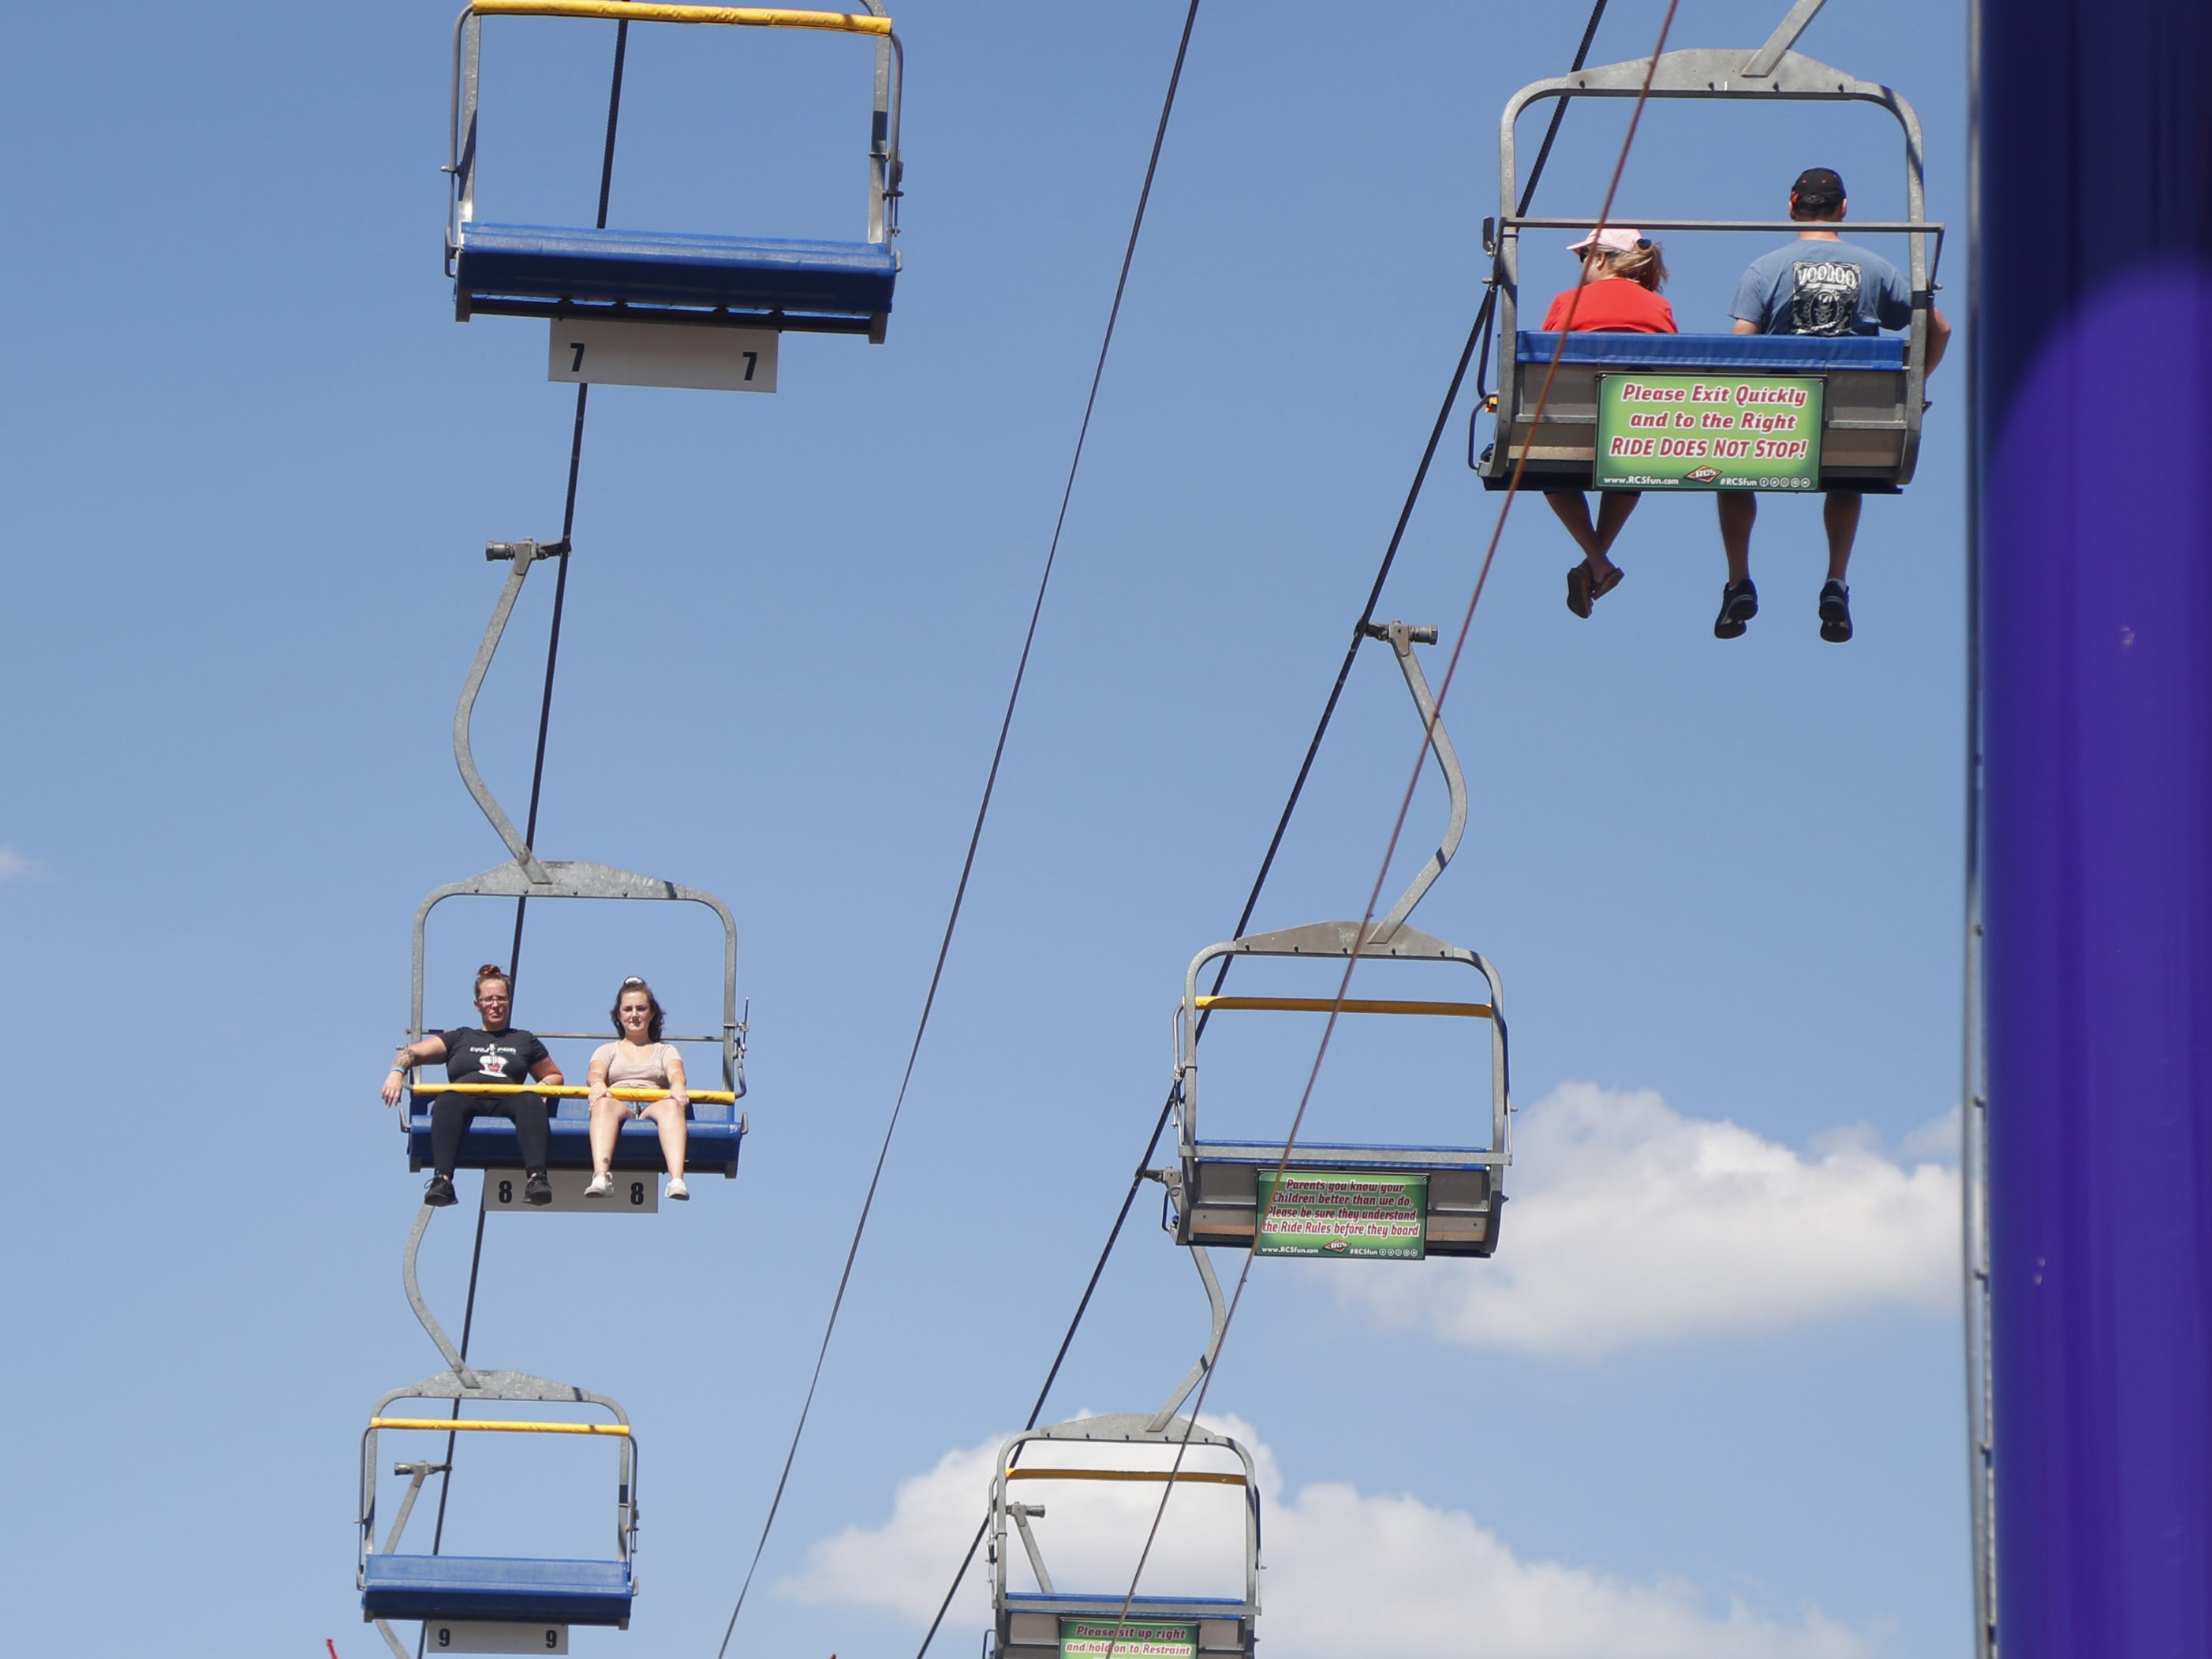 People ride the ski-lift at the Arizona State Fair in Tempe, Ariz. on October 5, 2018.